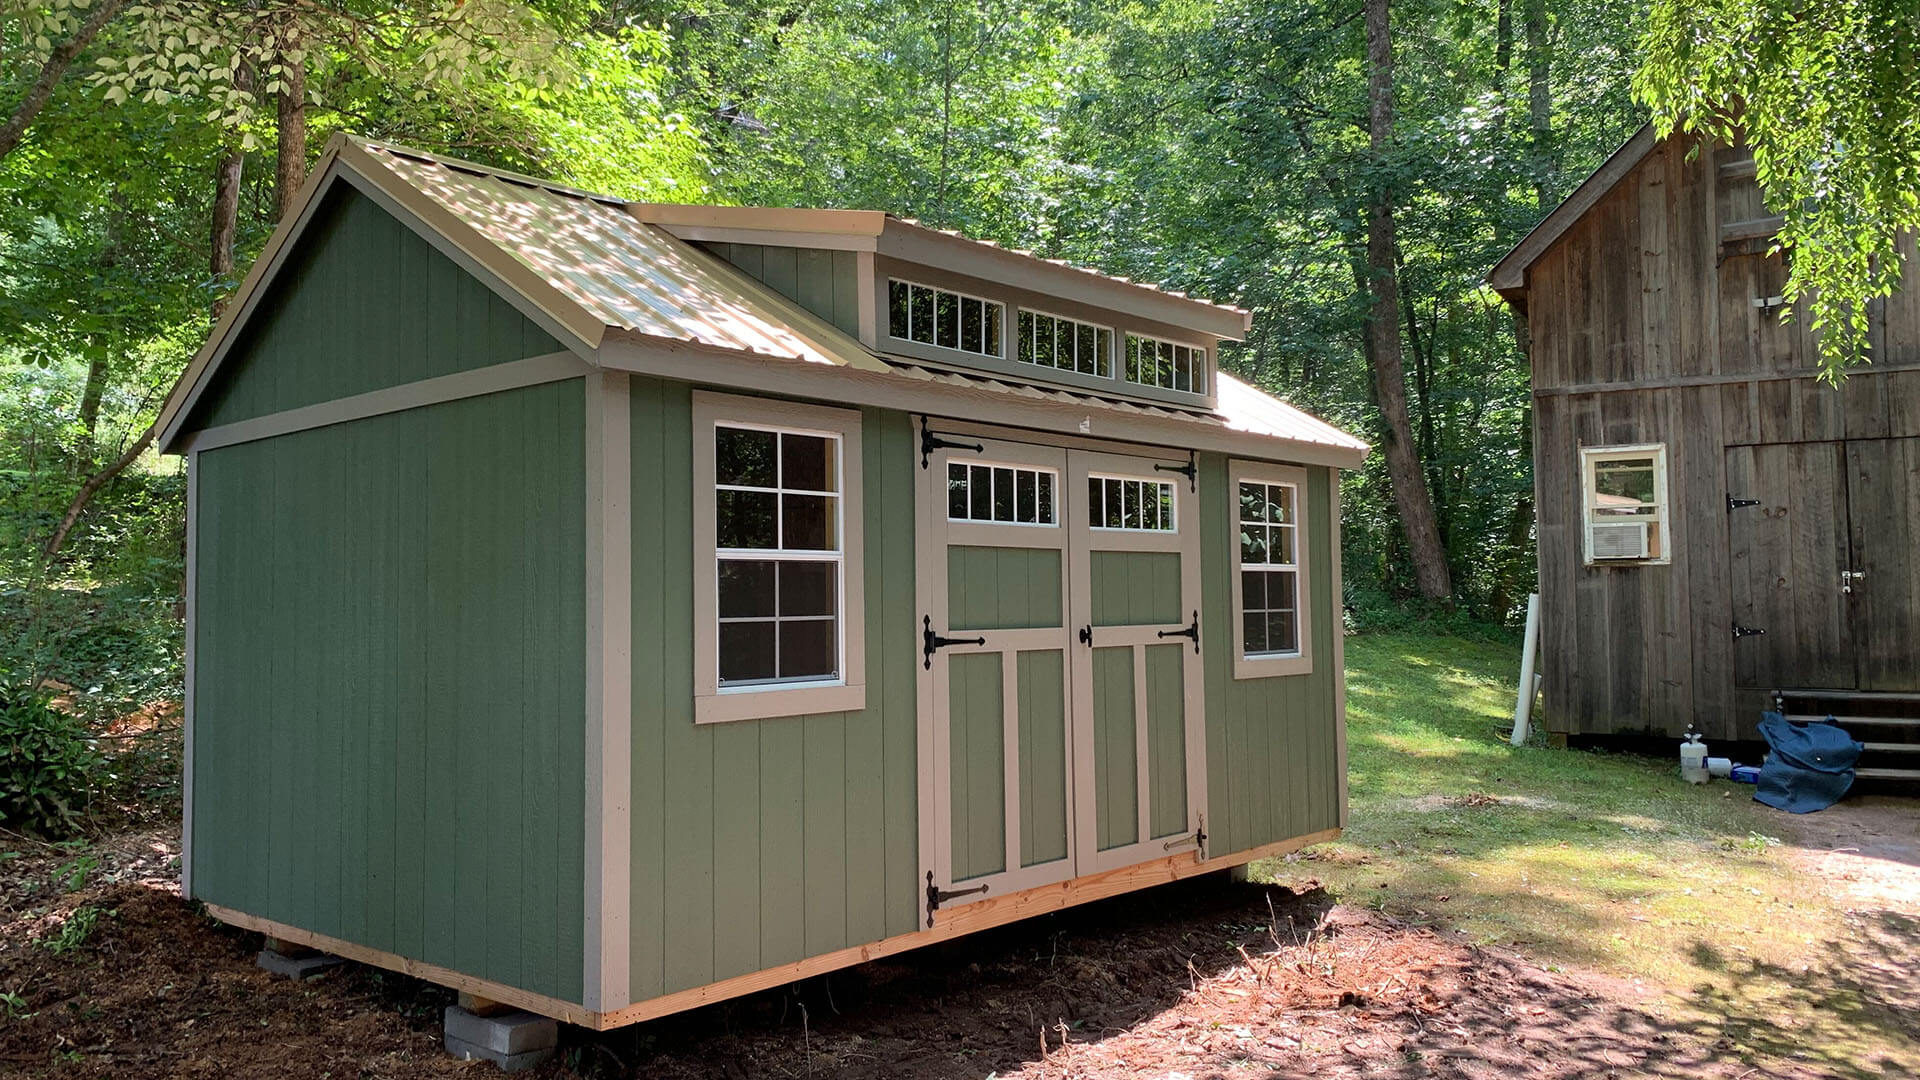 Smart Shed Portable Storage Buildings, Portable Sheds and Smart Sheds